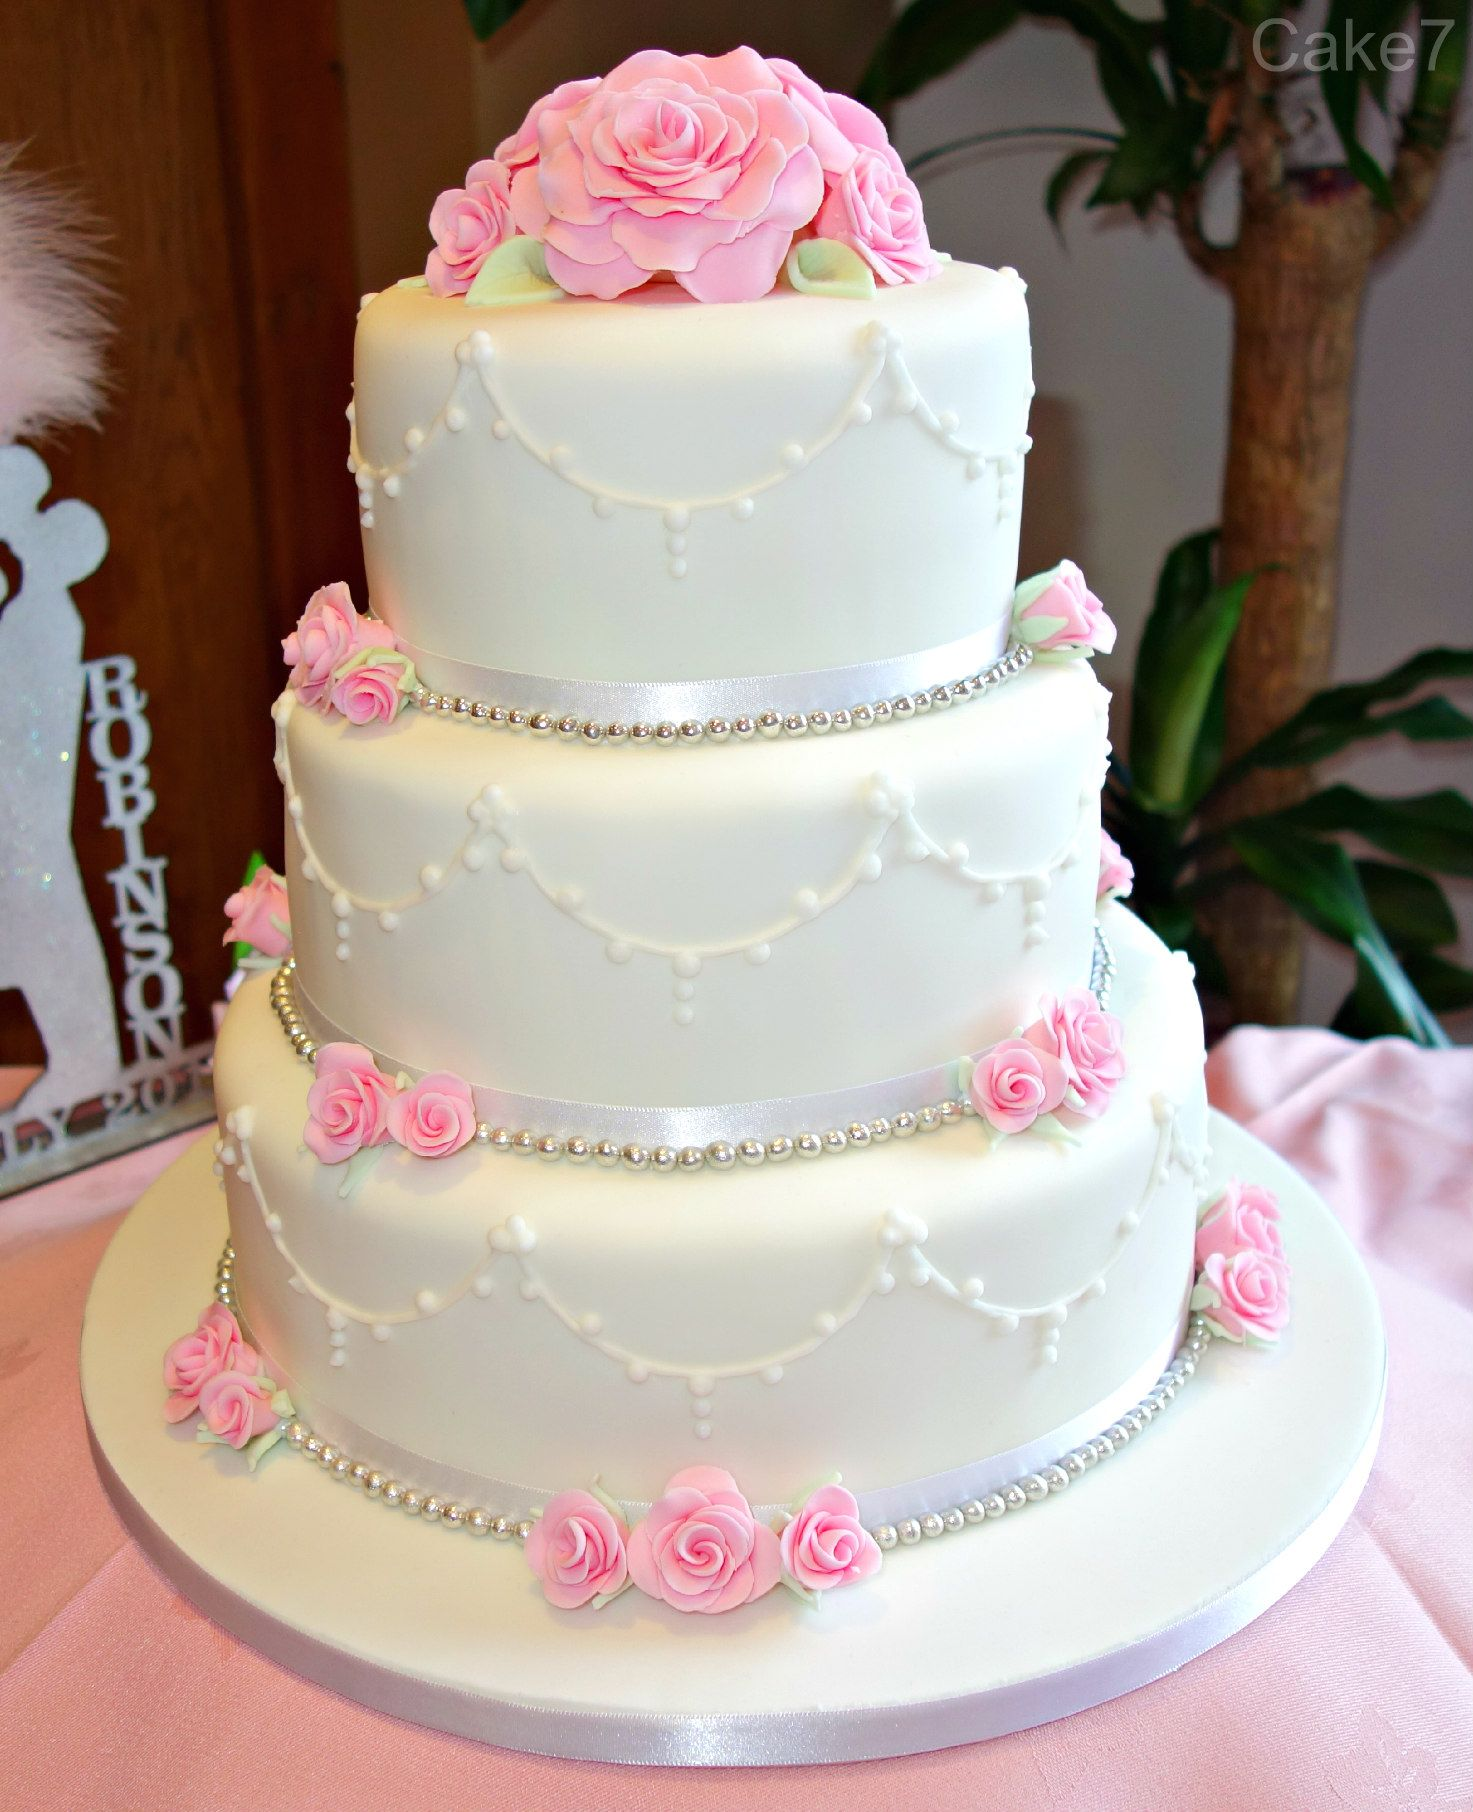 Pink roses themed wedding cake. www.cakeseven.wix... Facebook- Cake7 ...